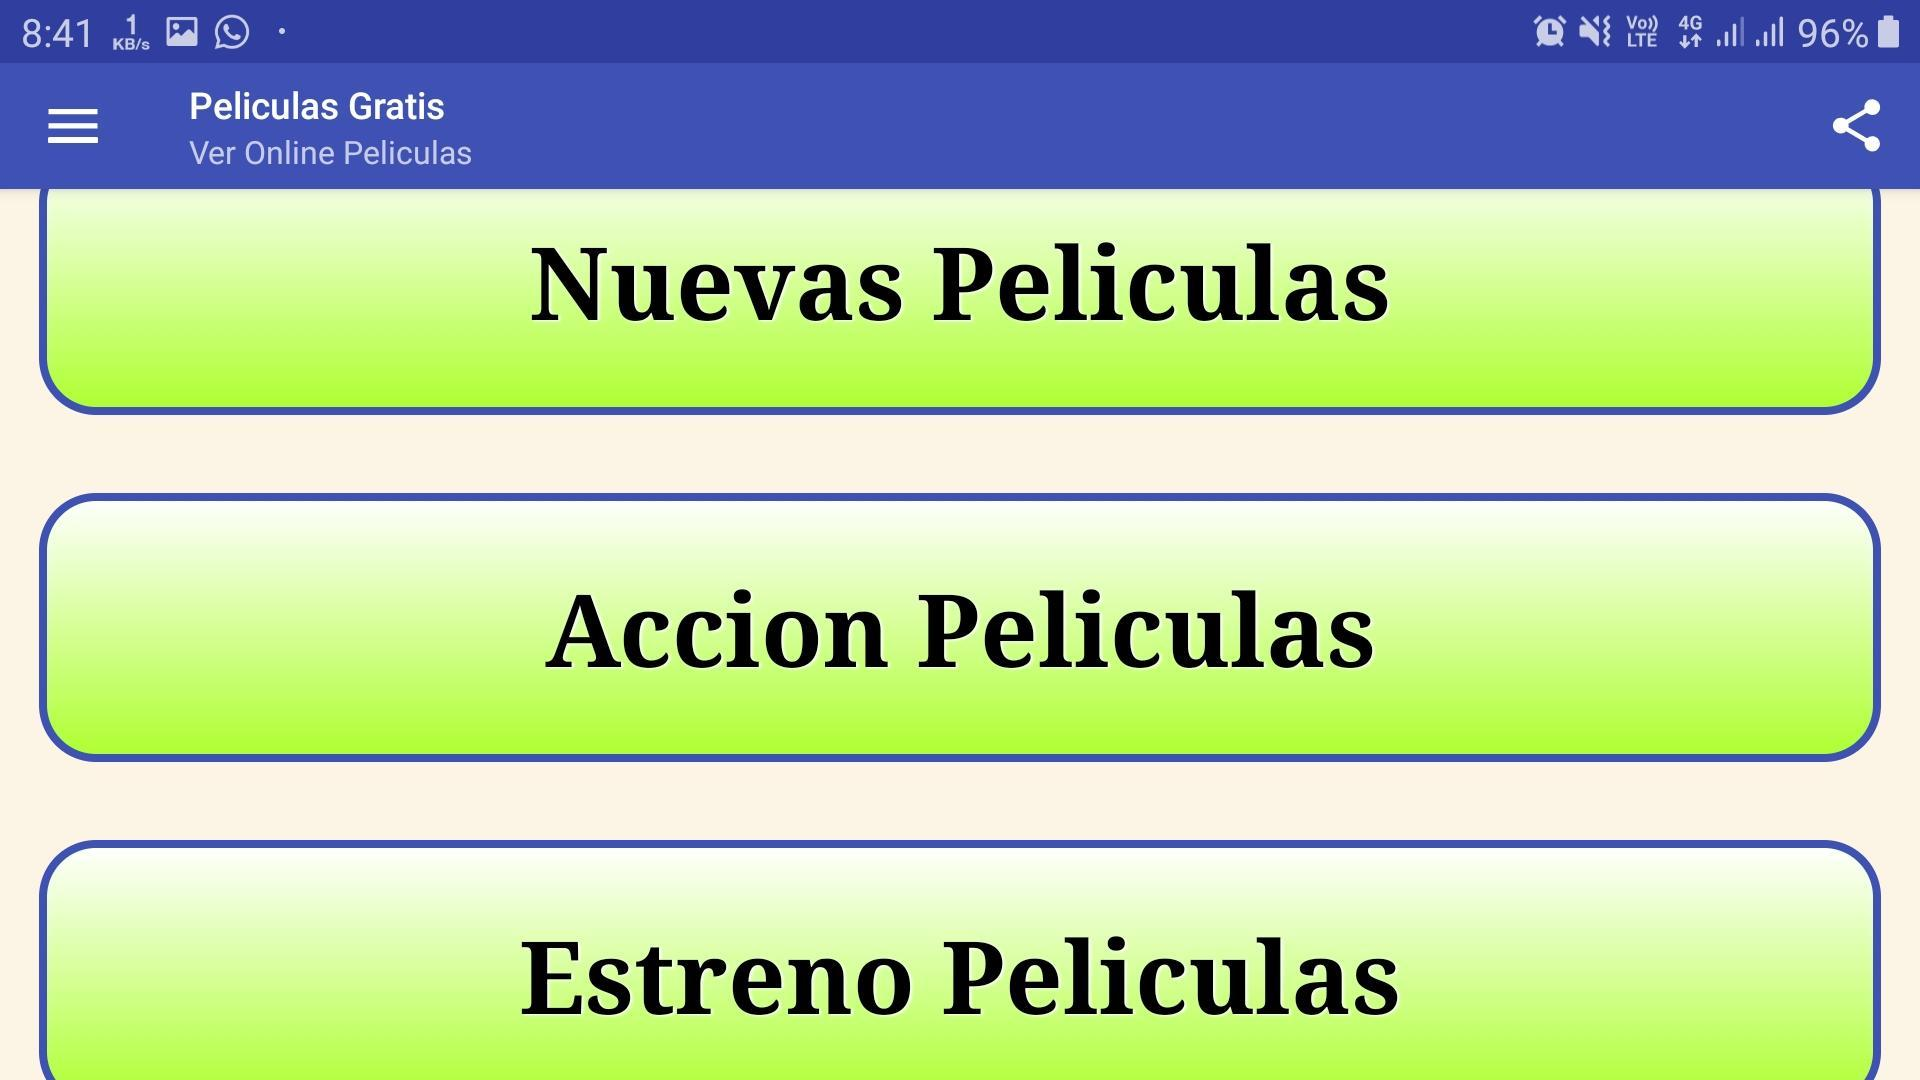 Películas Gratis En Español Latino 2020 For Android Apk Download